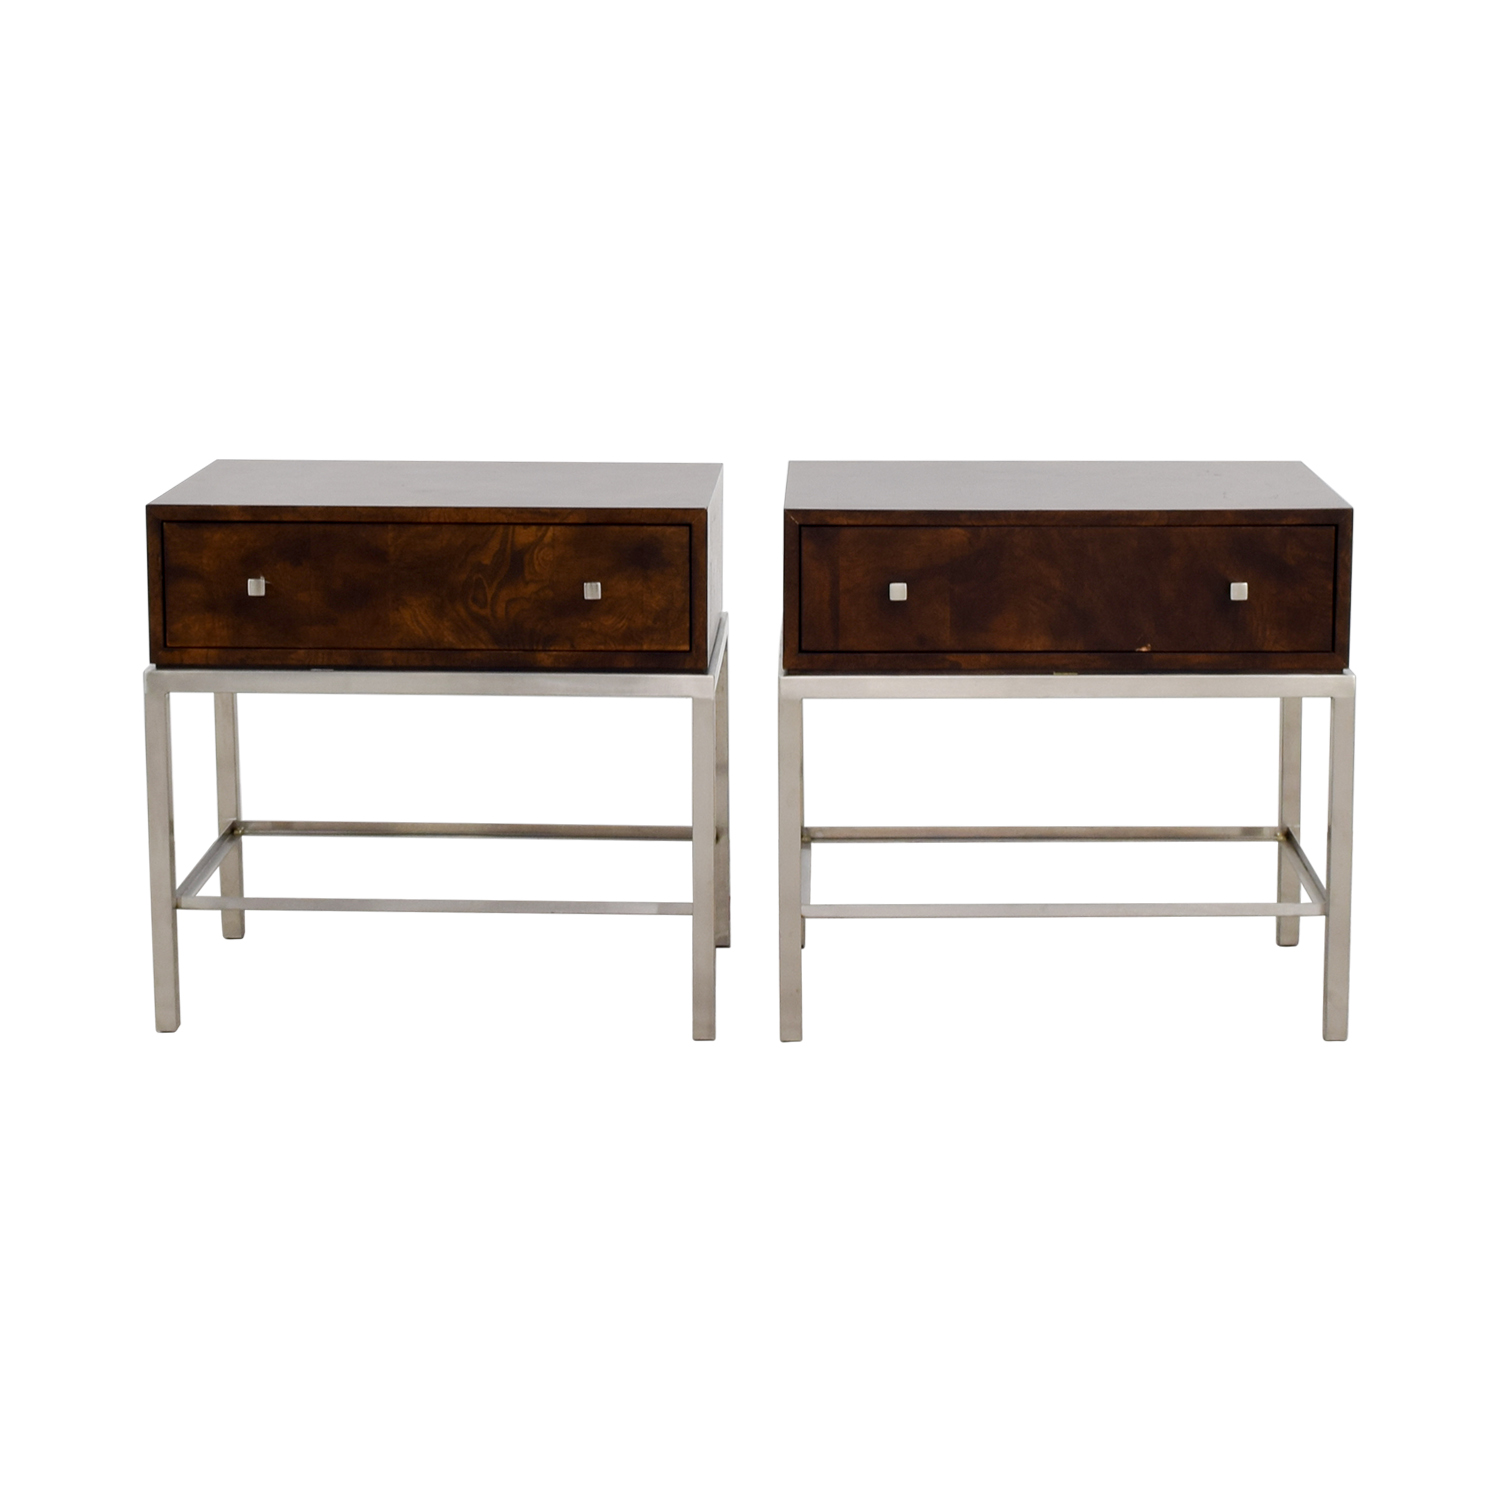 Ethan Allen Ethan Allen Wood & Metal Nightstand Tables